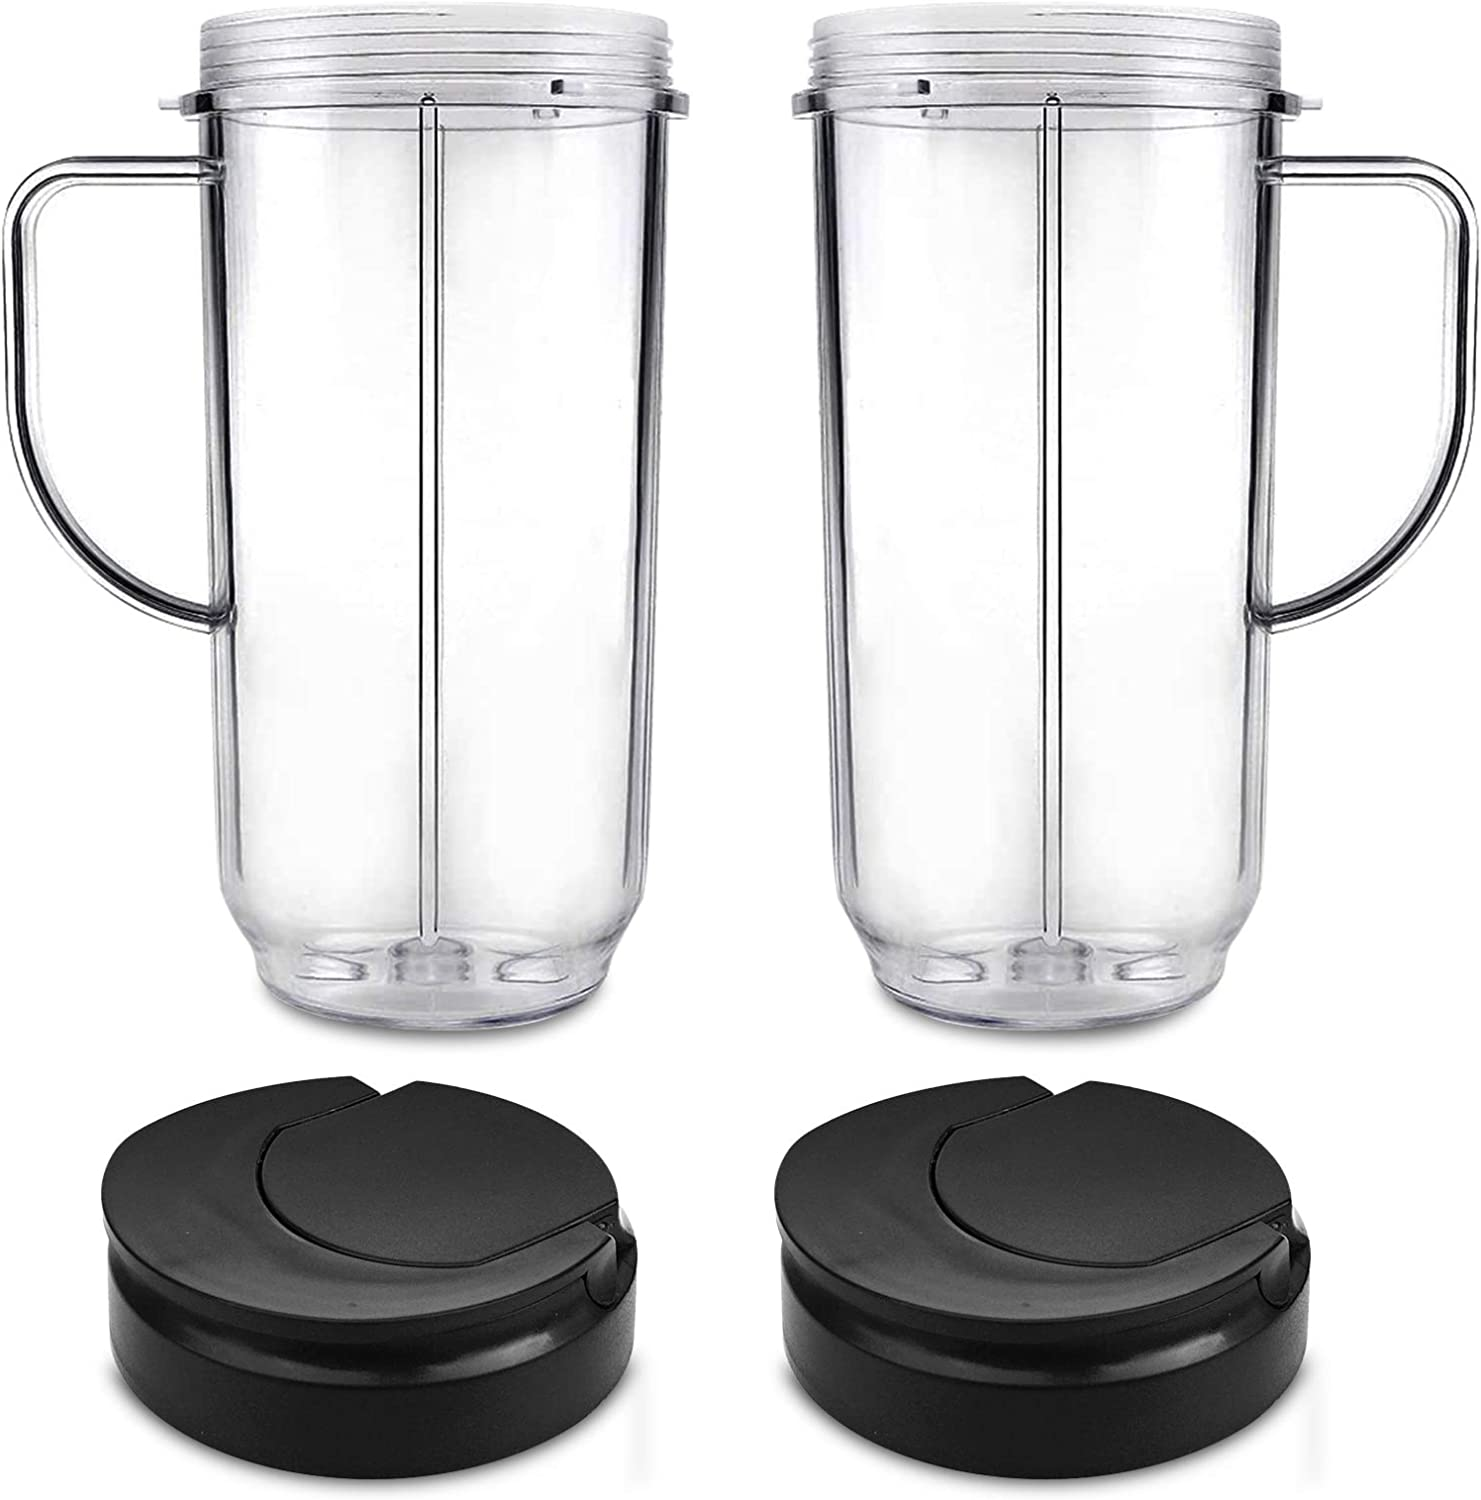 Replacement Tall Mug Cup With Flip Top To Go Lids, 2 Pack Tall 22oz Cups with 2 Pack Flip Top To-Go Lids Replacement Parts Compatible with 250w Magic Bullet Mugs & Cups Blender Juicer Mixer